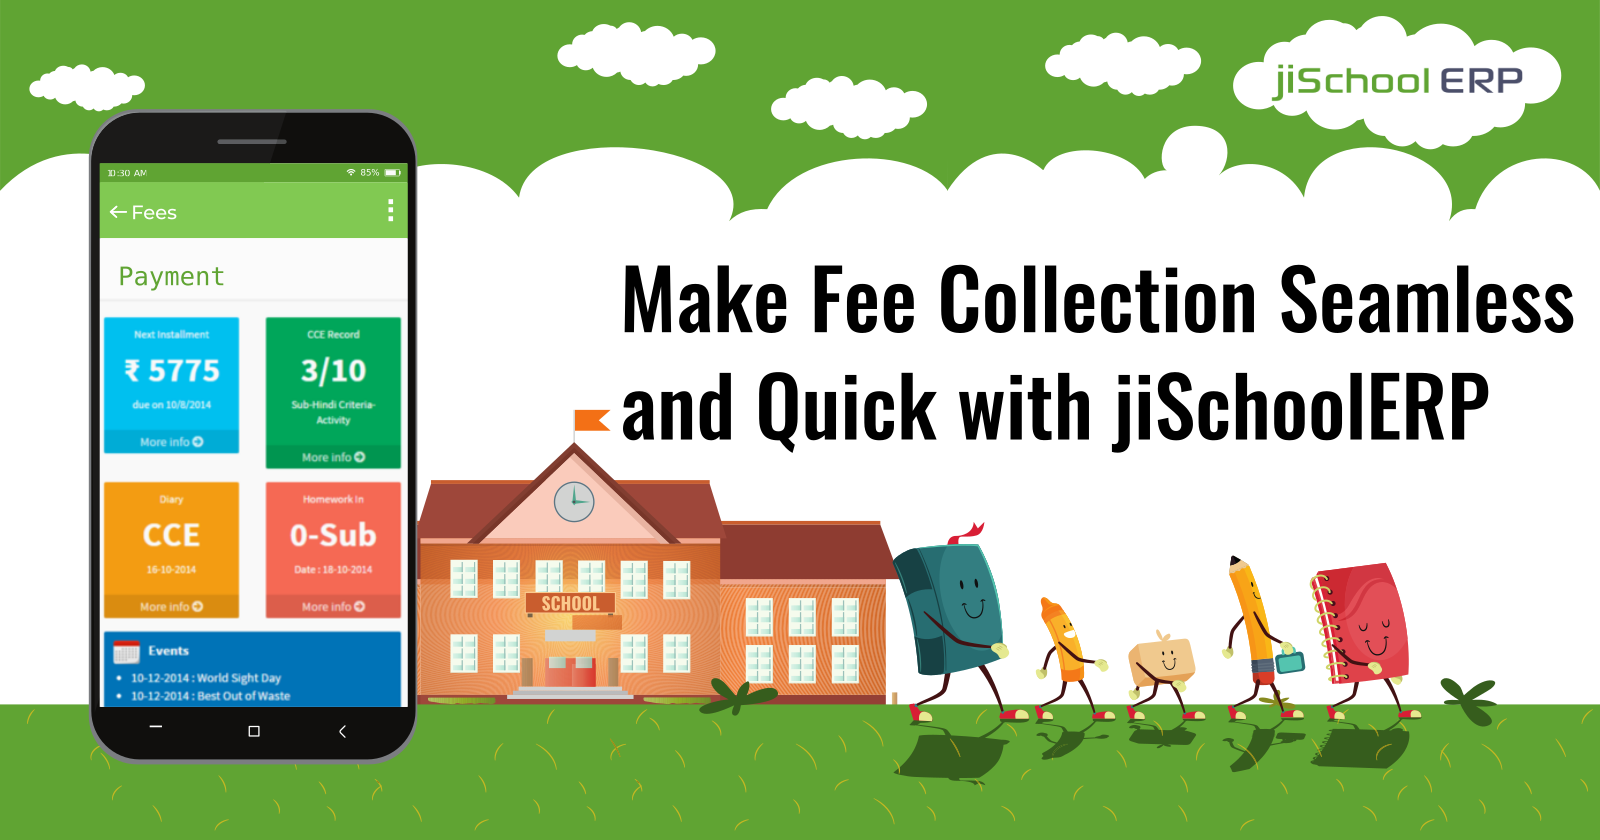 Make Fee Collection Seamless and Quick with jiSchoolERP